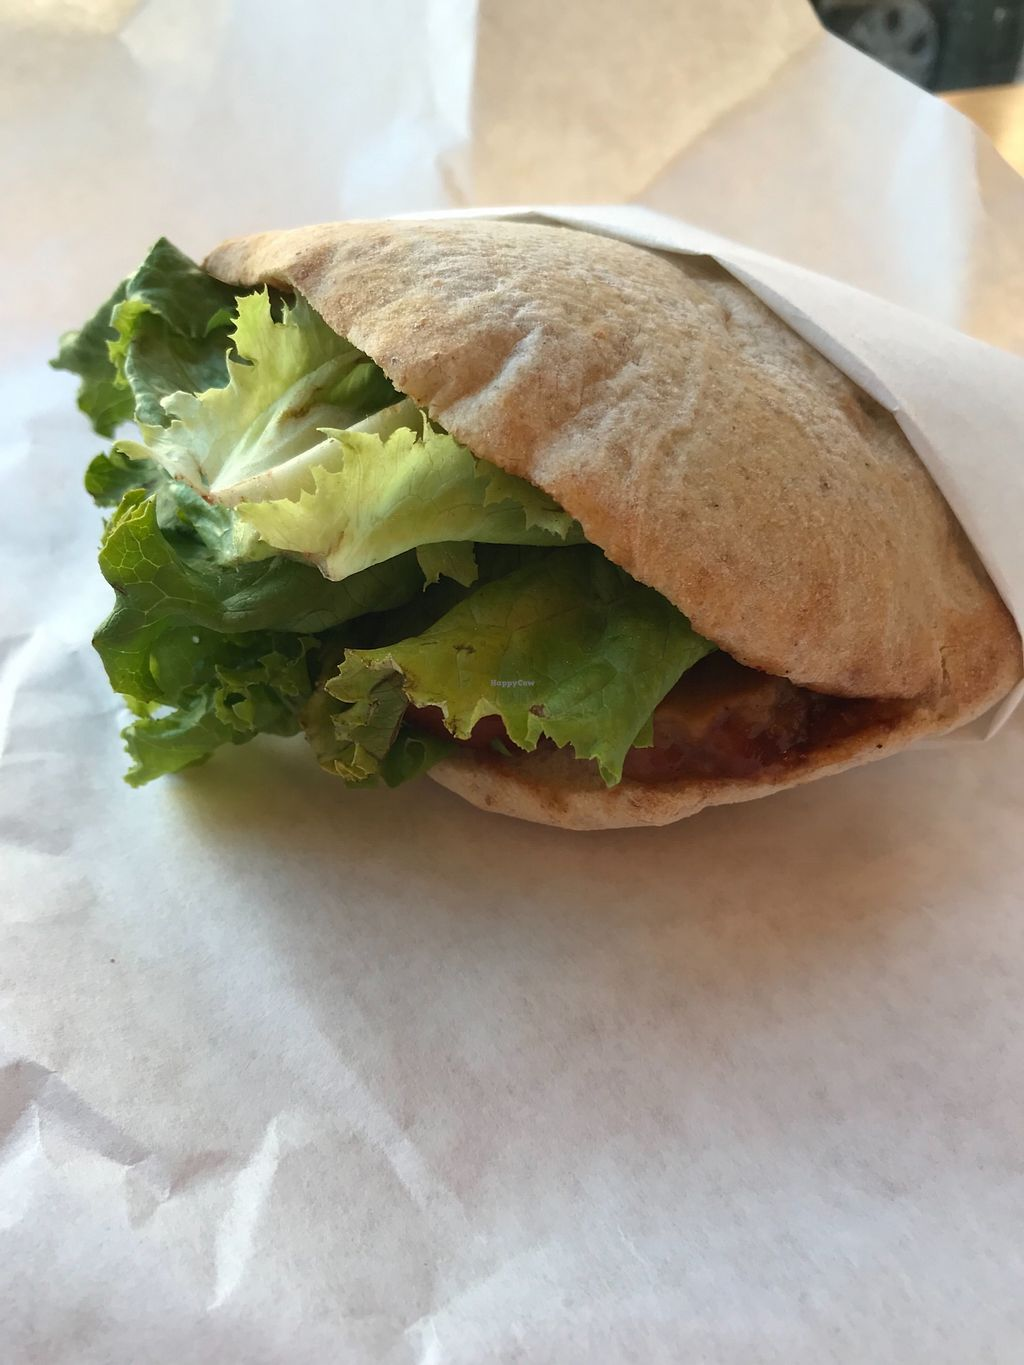 """Photo of Clover Food Lab  by <a href=""""/members/profile/EC5"""">EC5</a> <br/>BBQ seitan sandwich (vegan) <br/> December 30, 2017  - <a href='/contact/abuse/image/108260/341029'>Report</a>"""